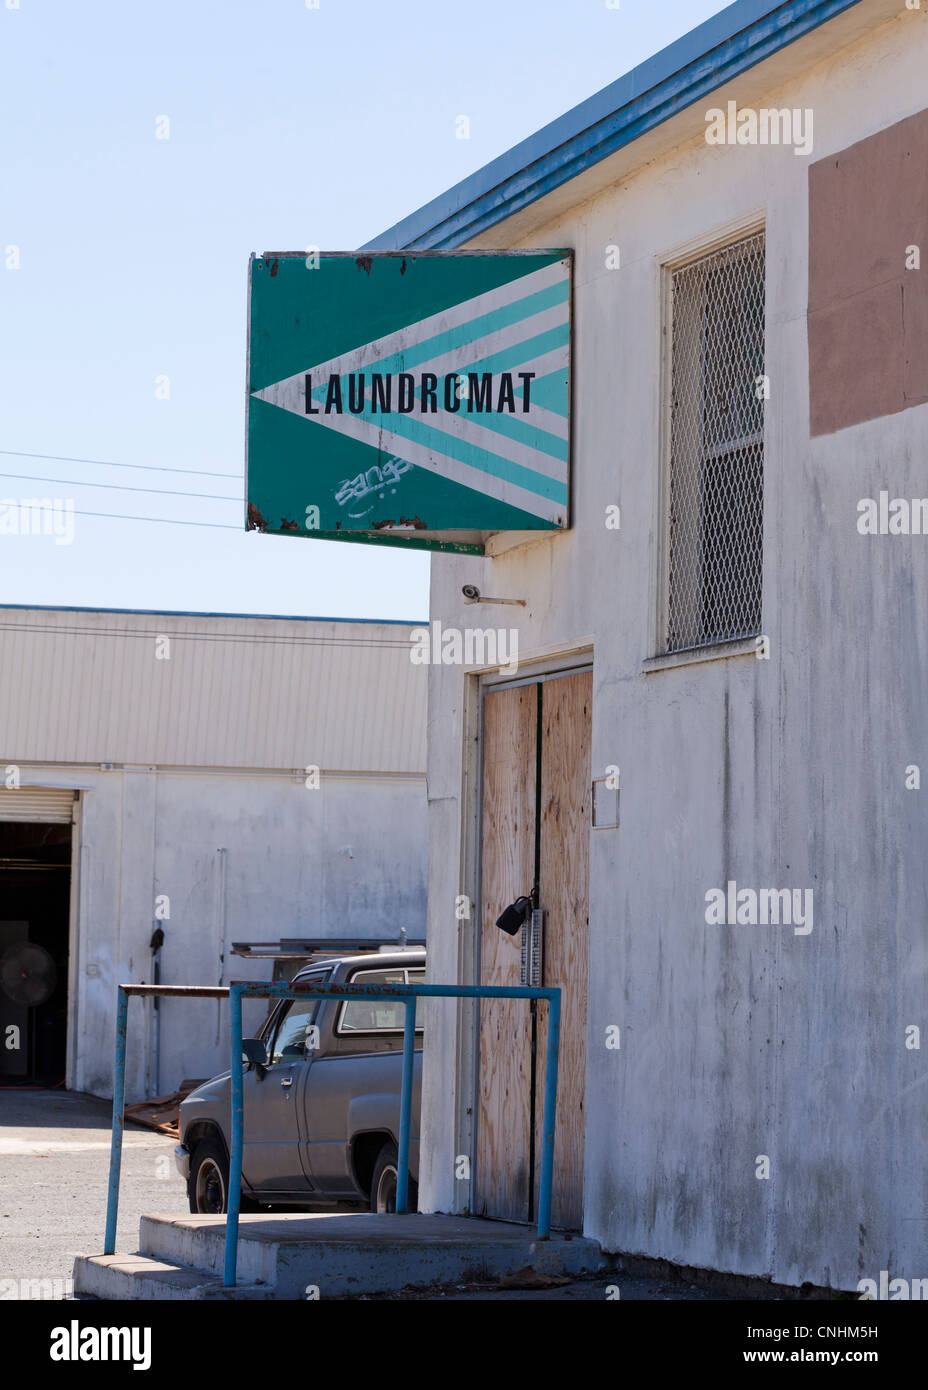 Old, worn laundromat sign - Stock Image